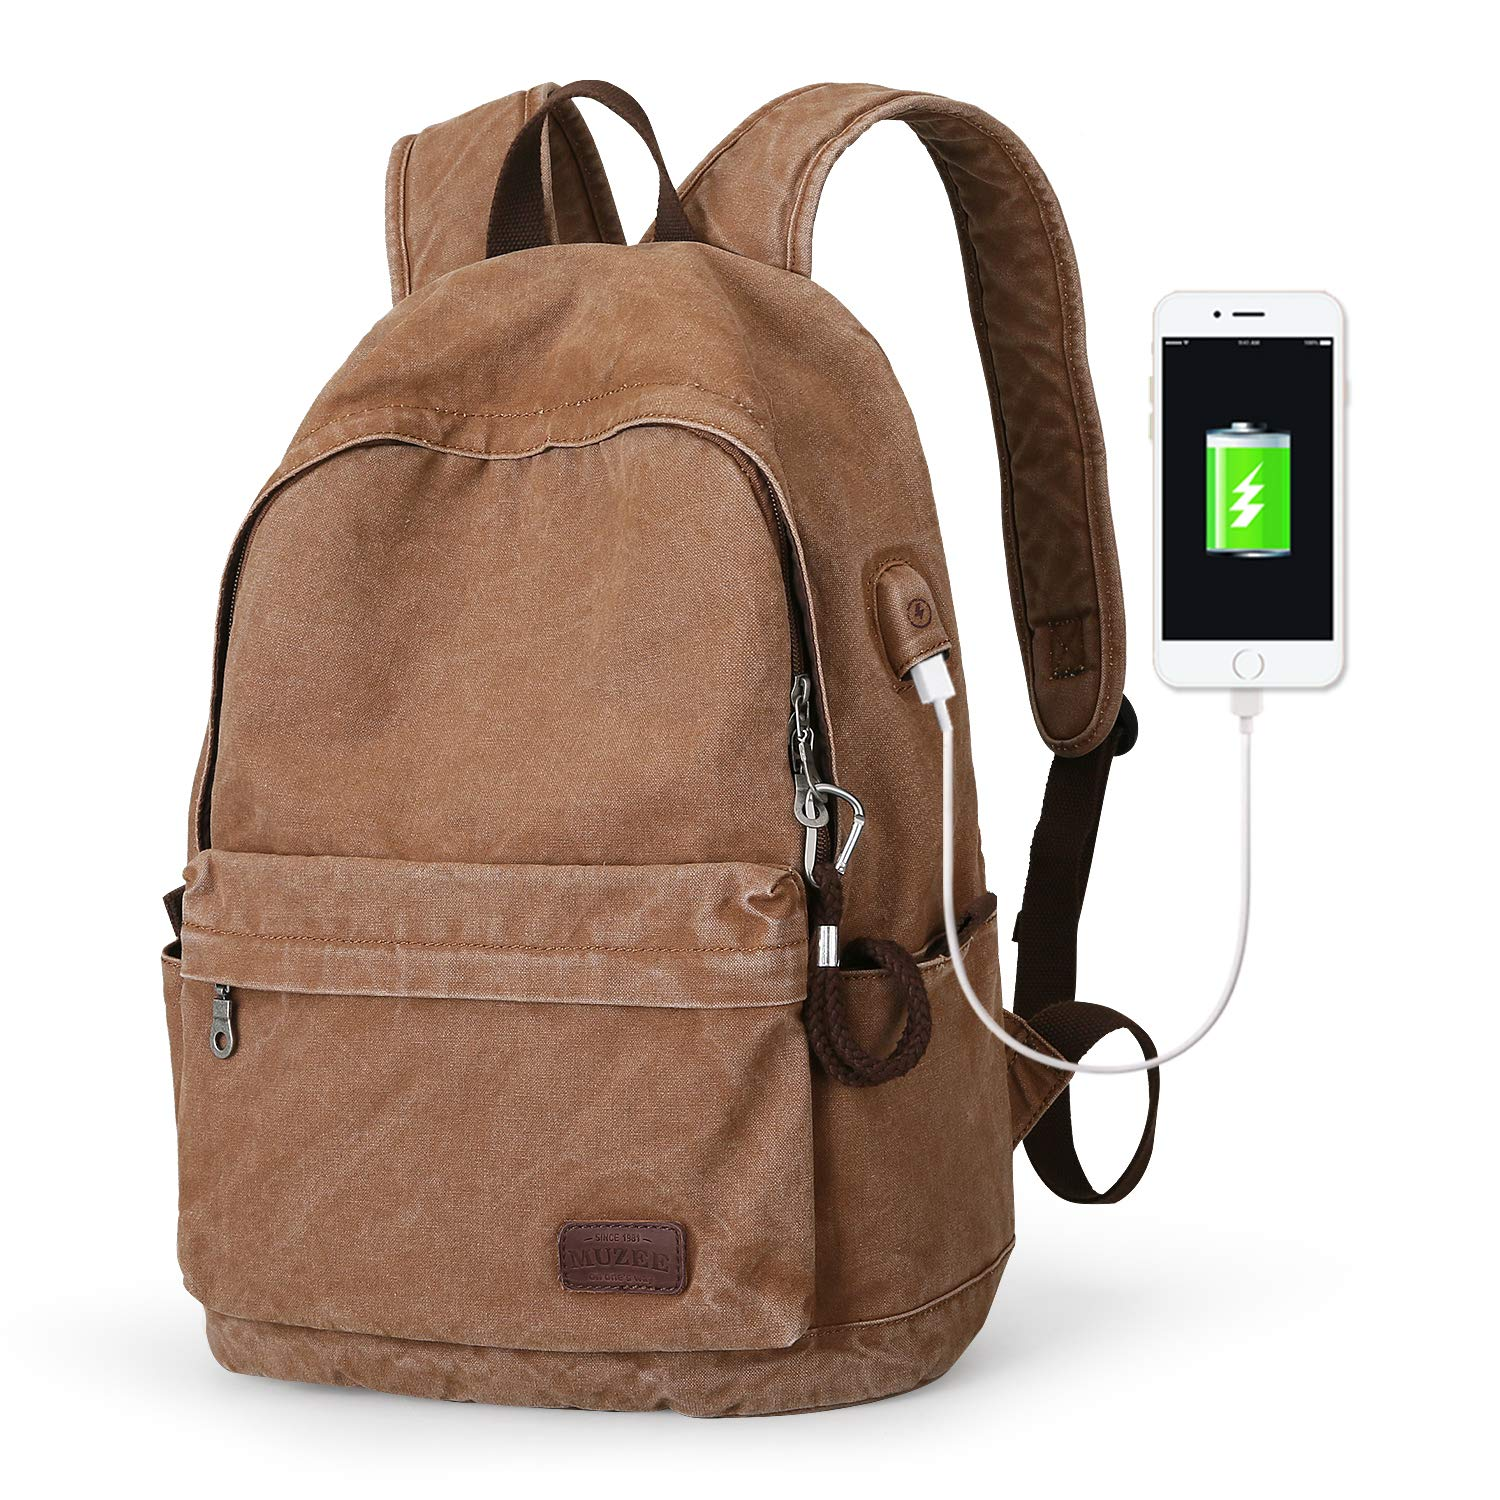 Muzee Canvas Backpack with USB Charging Port for Men Women, Lightweight Anti-Theft Travel Daypack College Student Rucksack Backpack Fits up to 15.6 inch Laptop Backpack Light Brown by Muzee